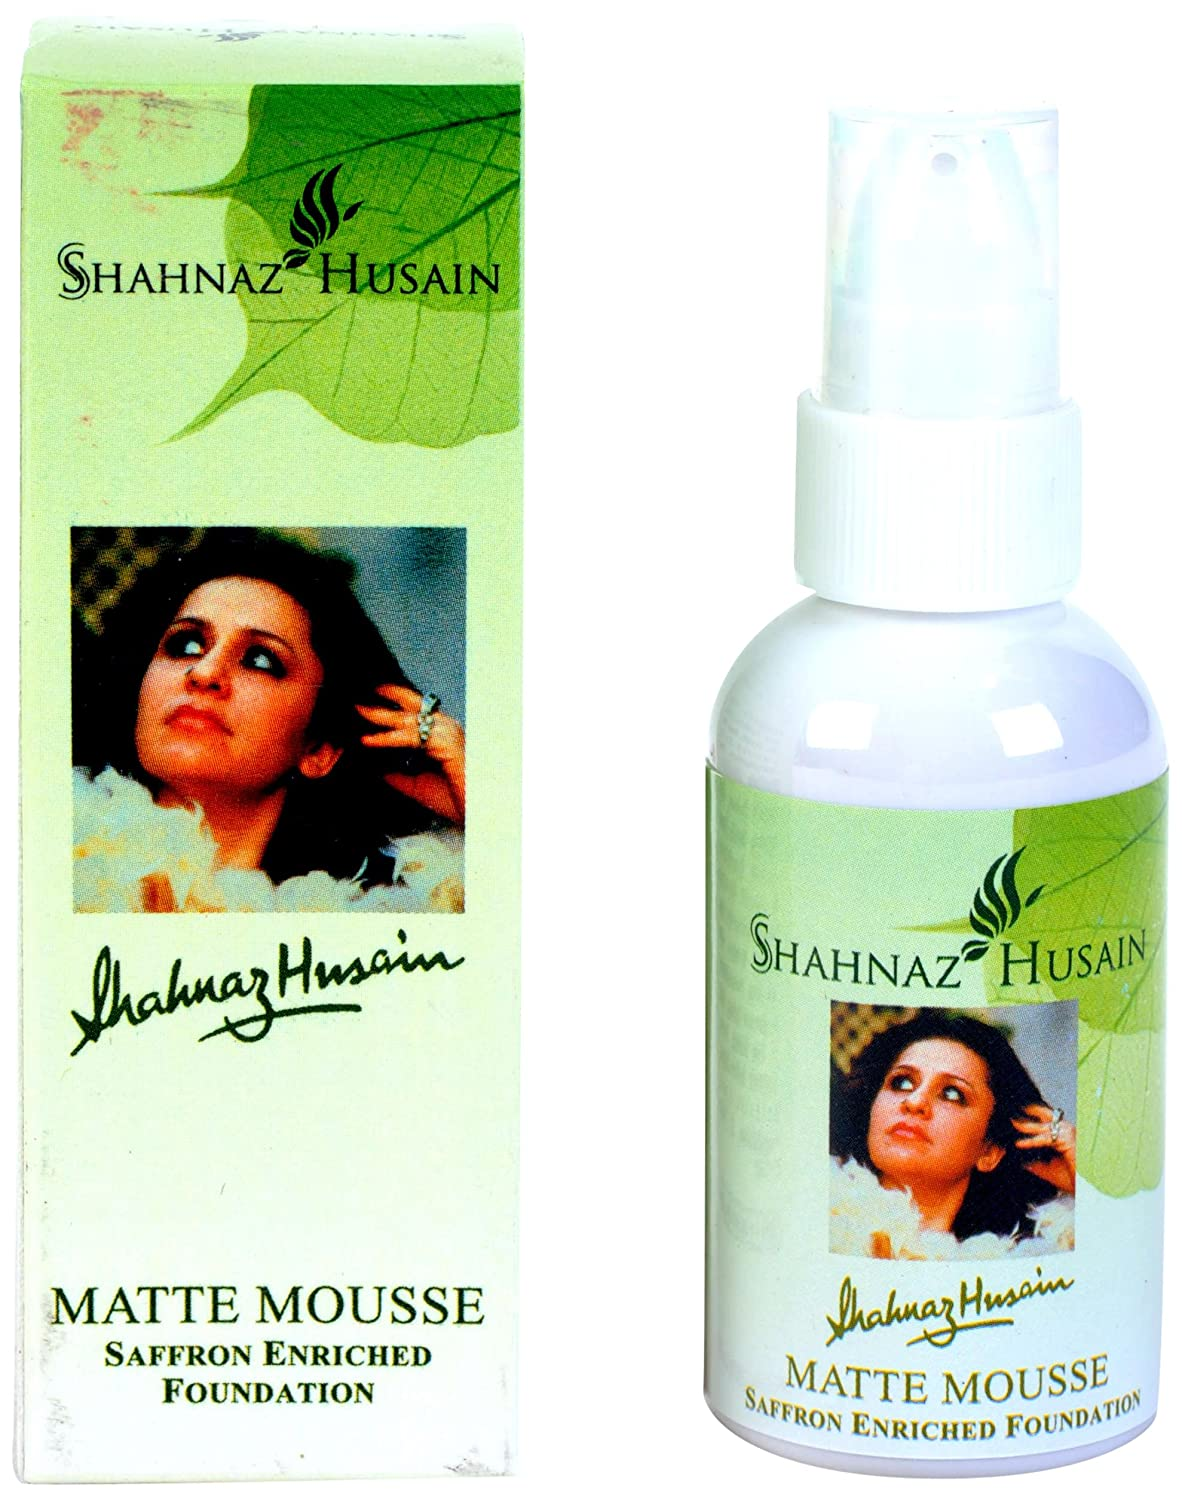 Shahnaz Husain Matte Mouse Foundation